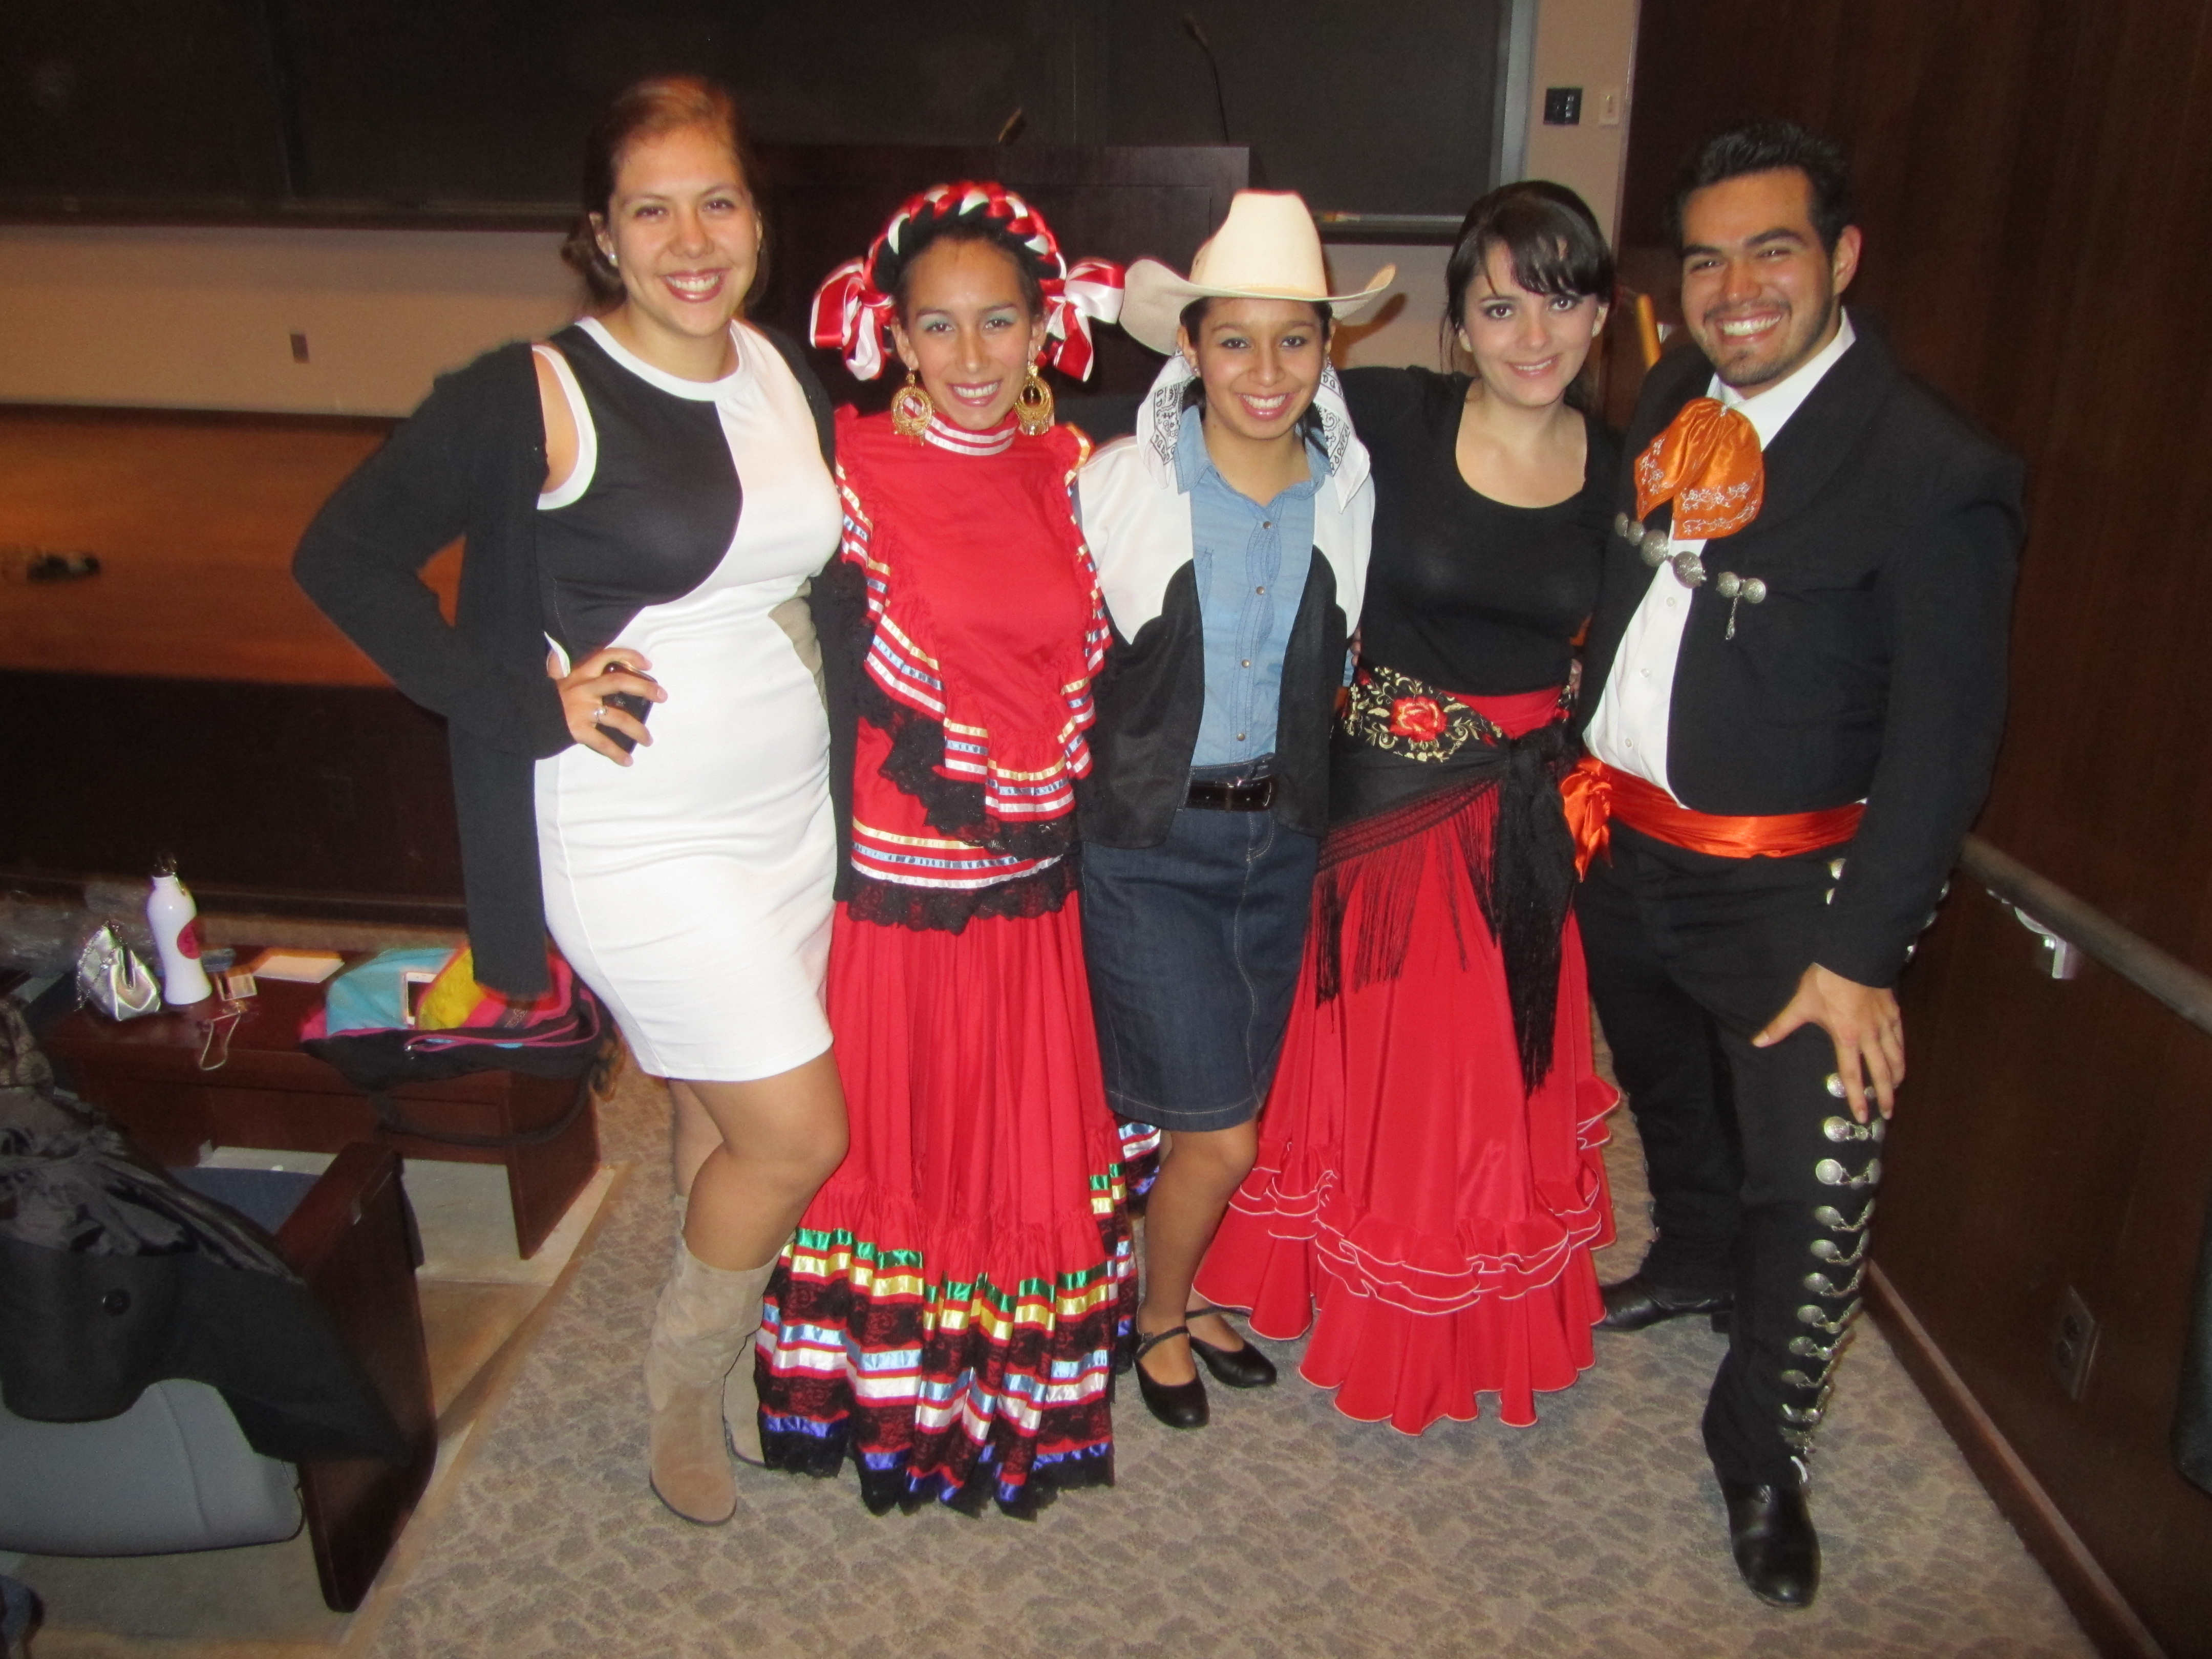 From left to right: Grecia Rivas '13 (audience), Lauren Castro '13 (performed with Ballet Folklórico), Silvana Alberti '14 (performed with Ballet Folklórico), Valerie Aguilar (danced Flamenco), Cuauhtémoc Ocampo '14 (performed with Ballet Folklórico)